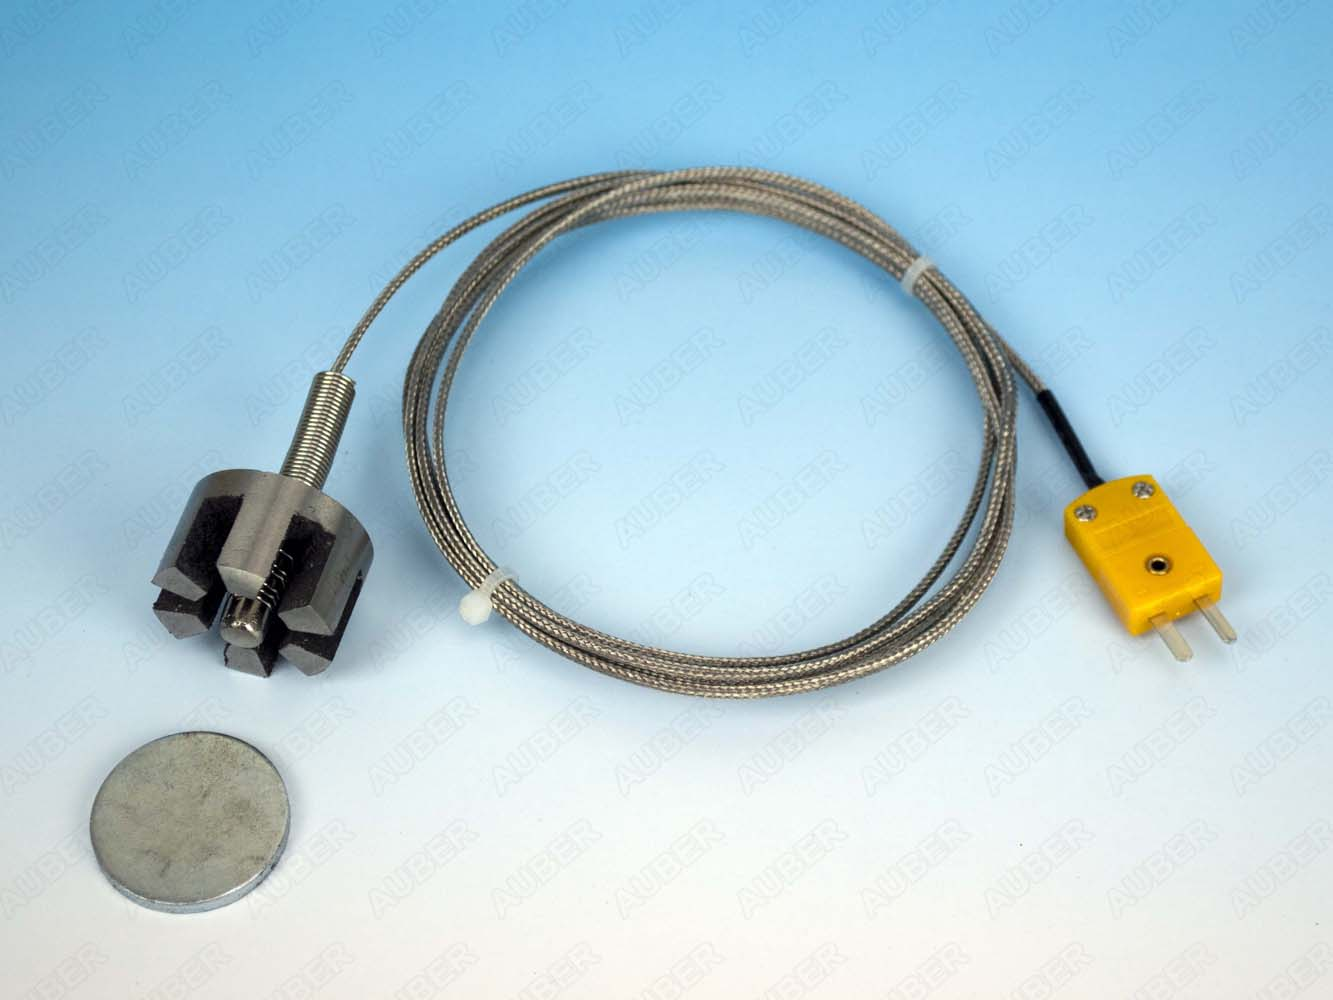 K Type Magnet Probe for Surfaces and Walls (Out of stock)